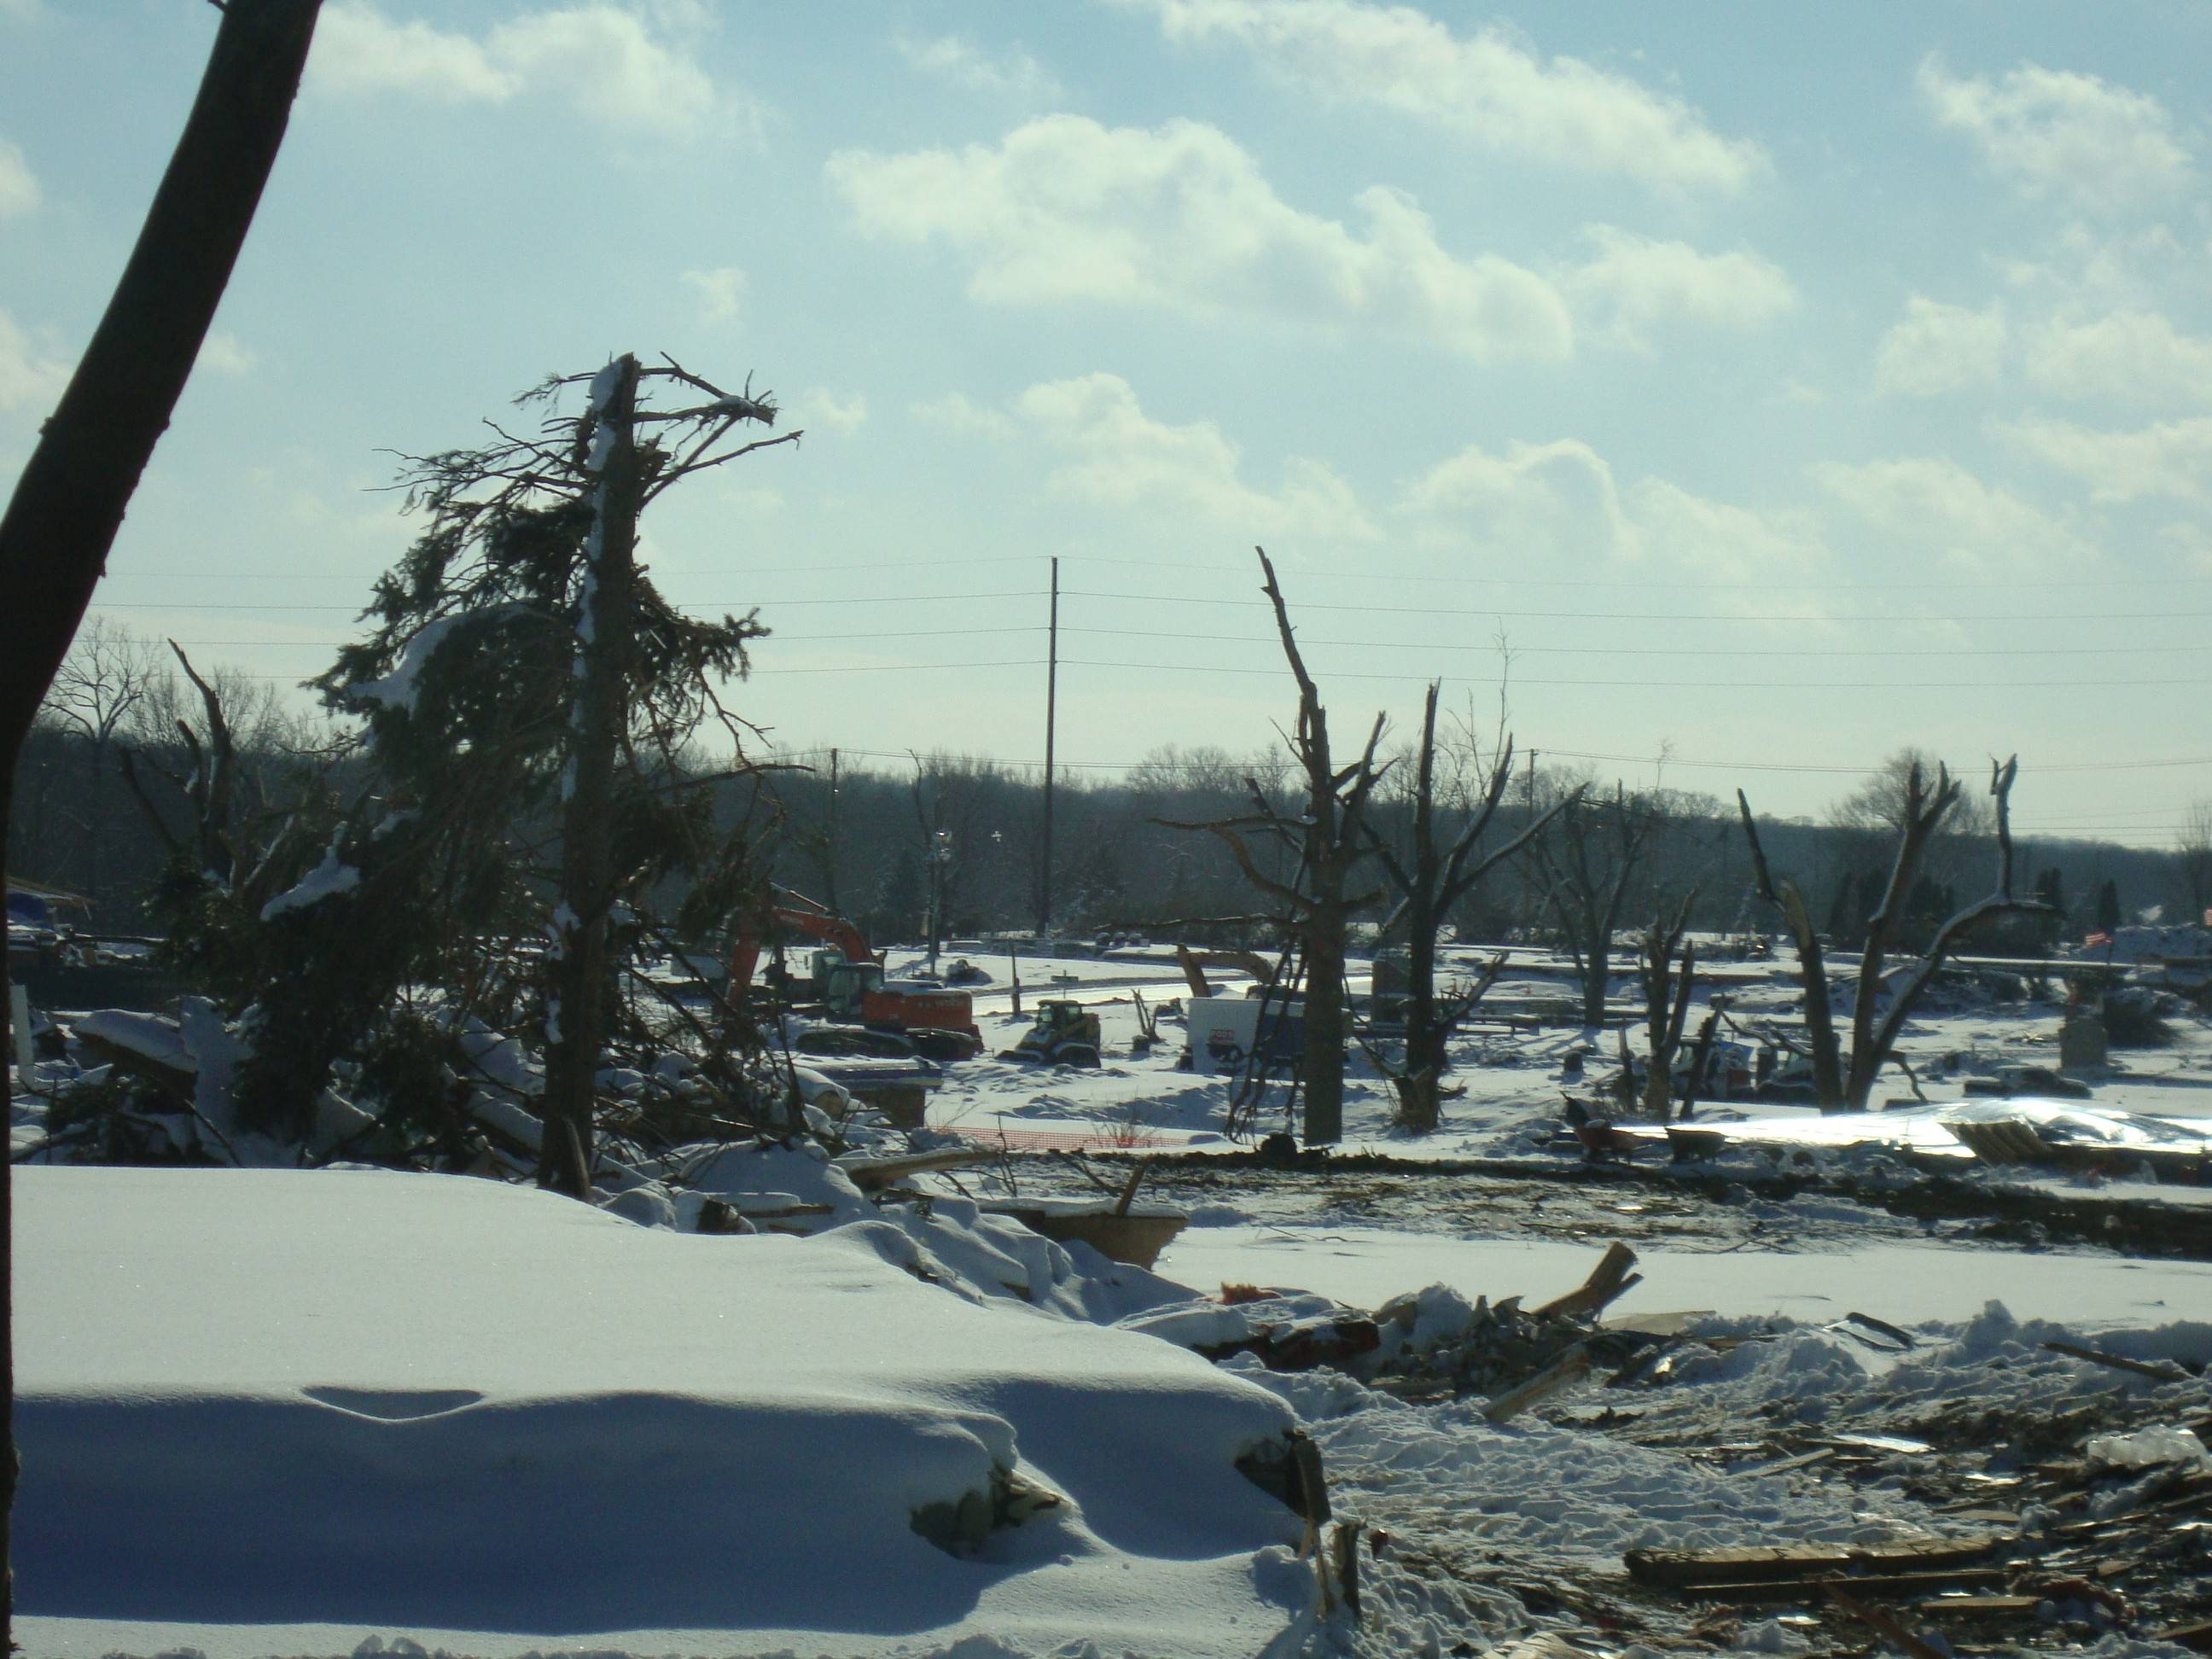 The Palatine Park District continues its aid efforts for the tornado ravaged community of Washington, Ill., with a fundraiser to purchase Trees for Washington. For details, visit palatineparks.org.